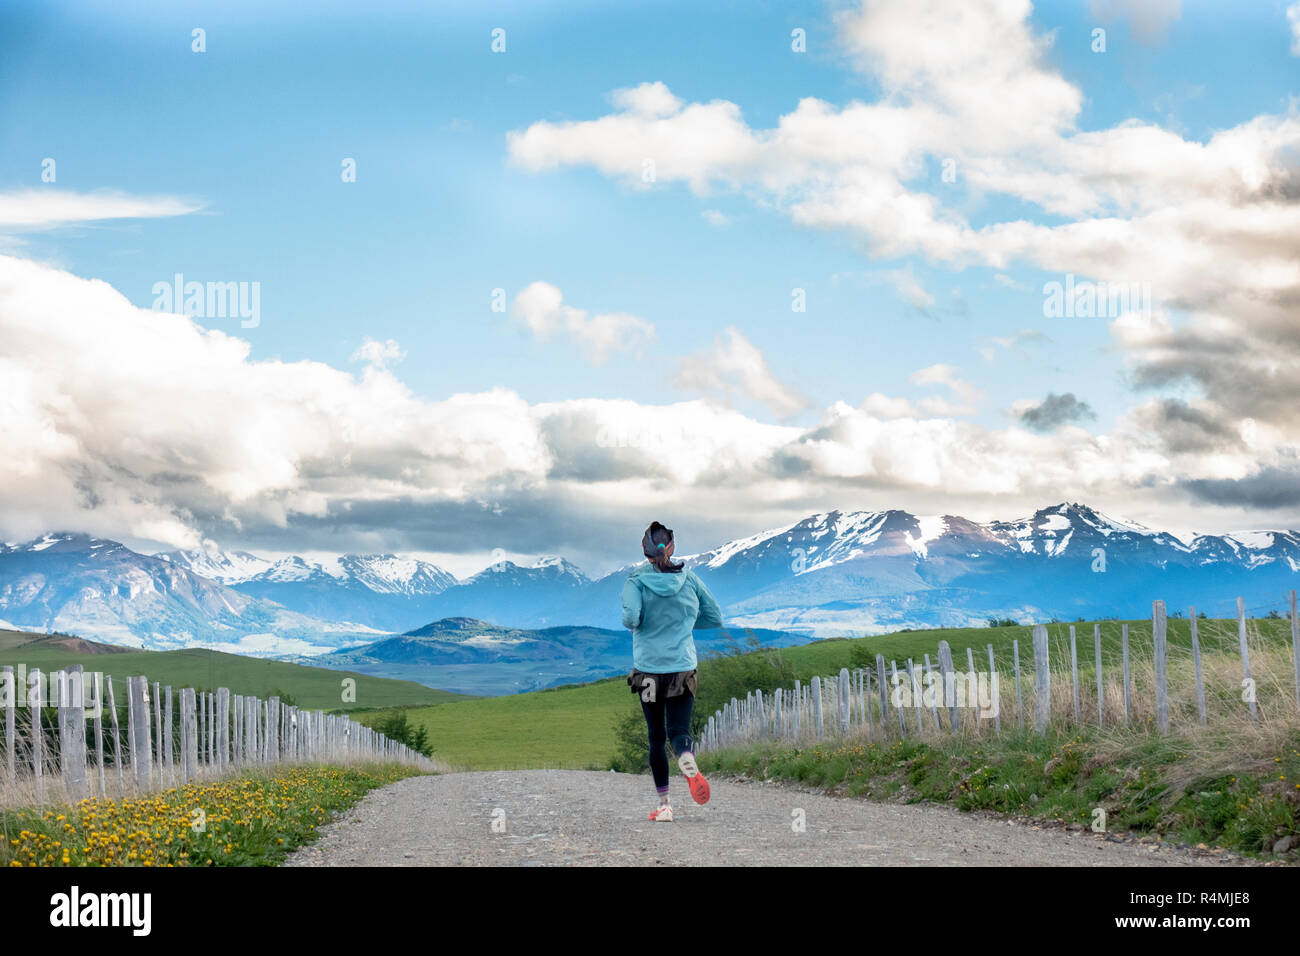 Woman running on a dirt road with beautiful mountains in the background near Coyhaique, Chile in the Aysen Region near Patagonia. - Stock Image